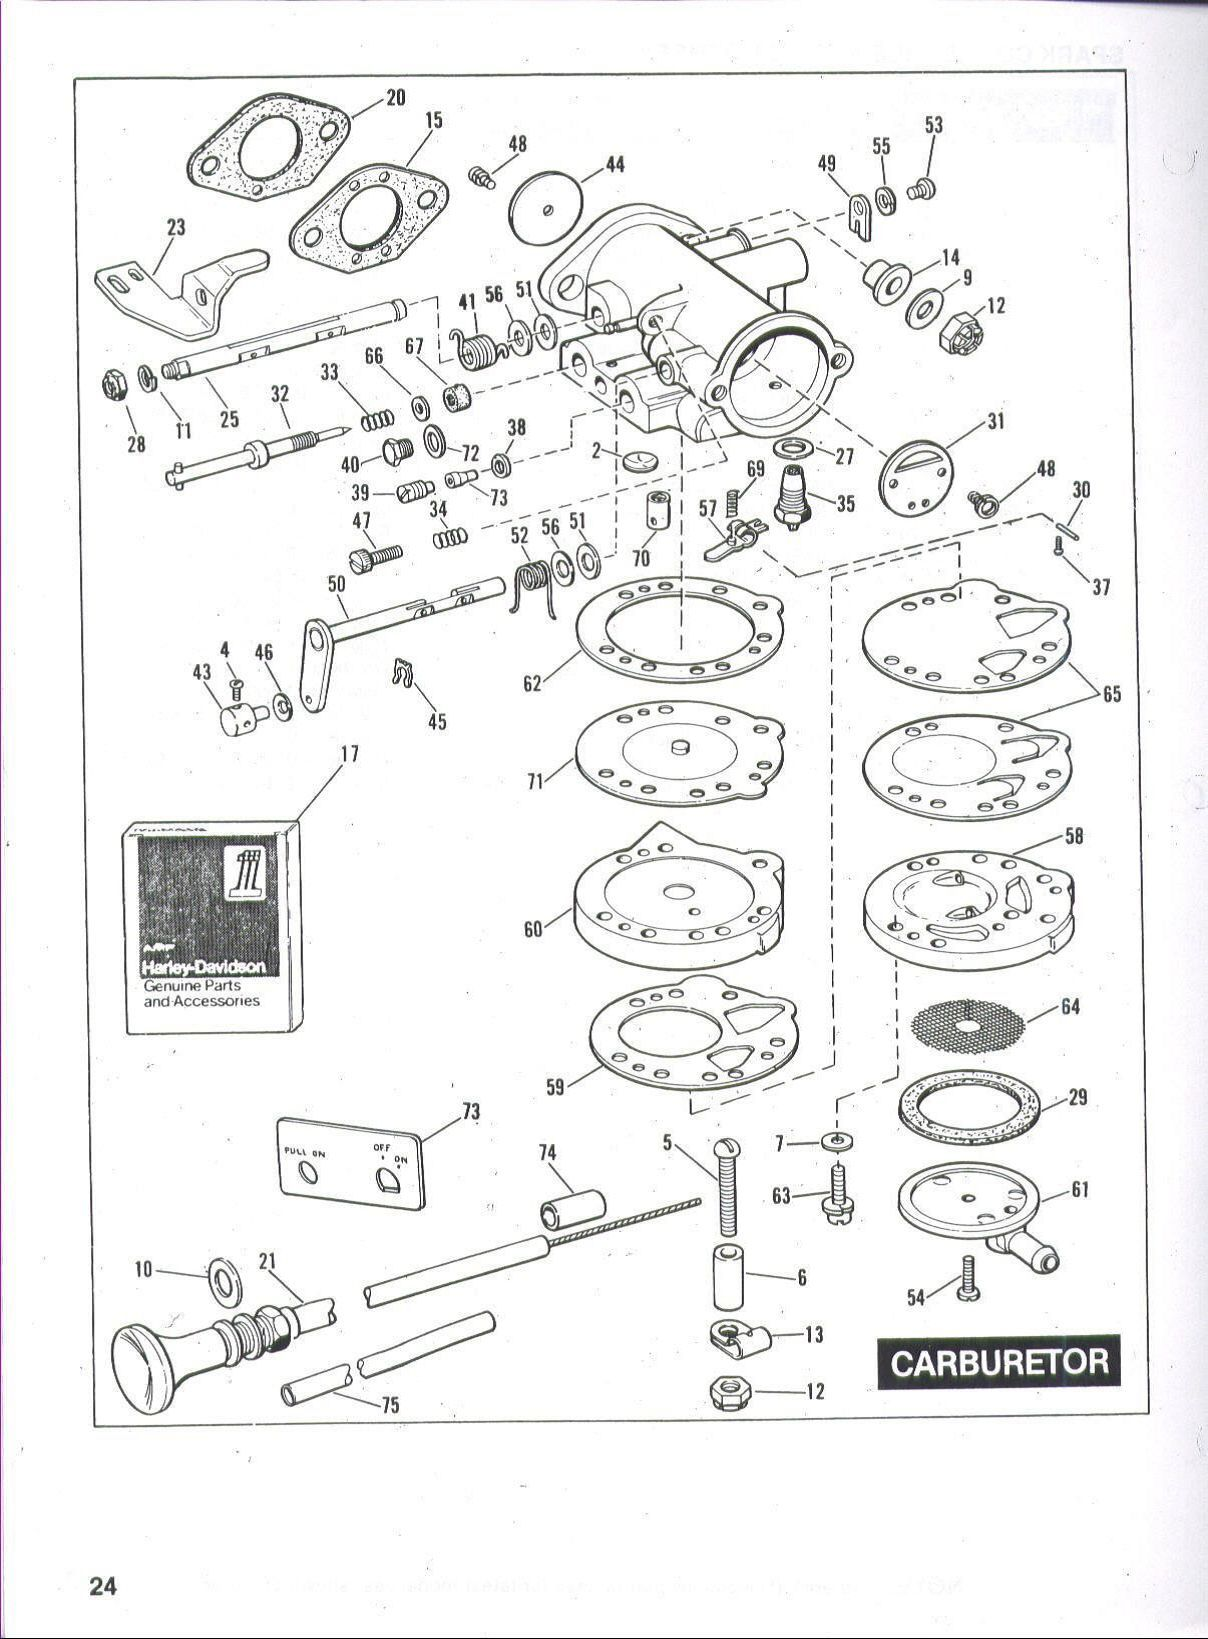 5176dbb44702a1adc4080edf7301936d harley davidson golf cart carburetor diagram utv stuff westinghouse golf cart wiring diagram at fashall.co